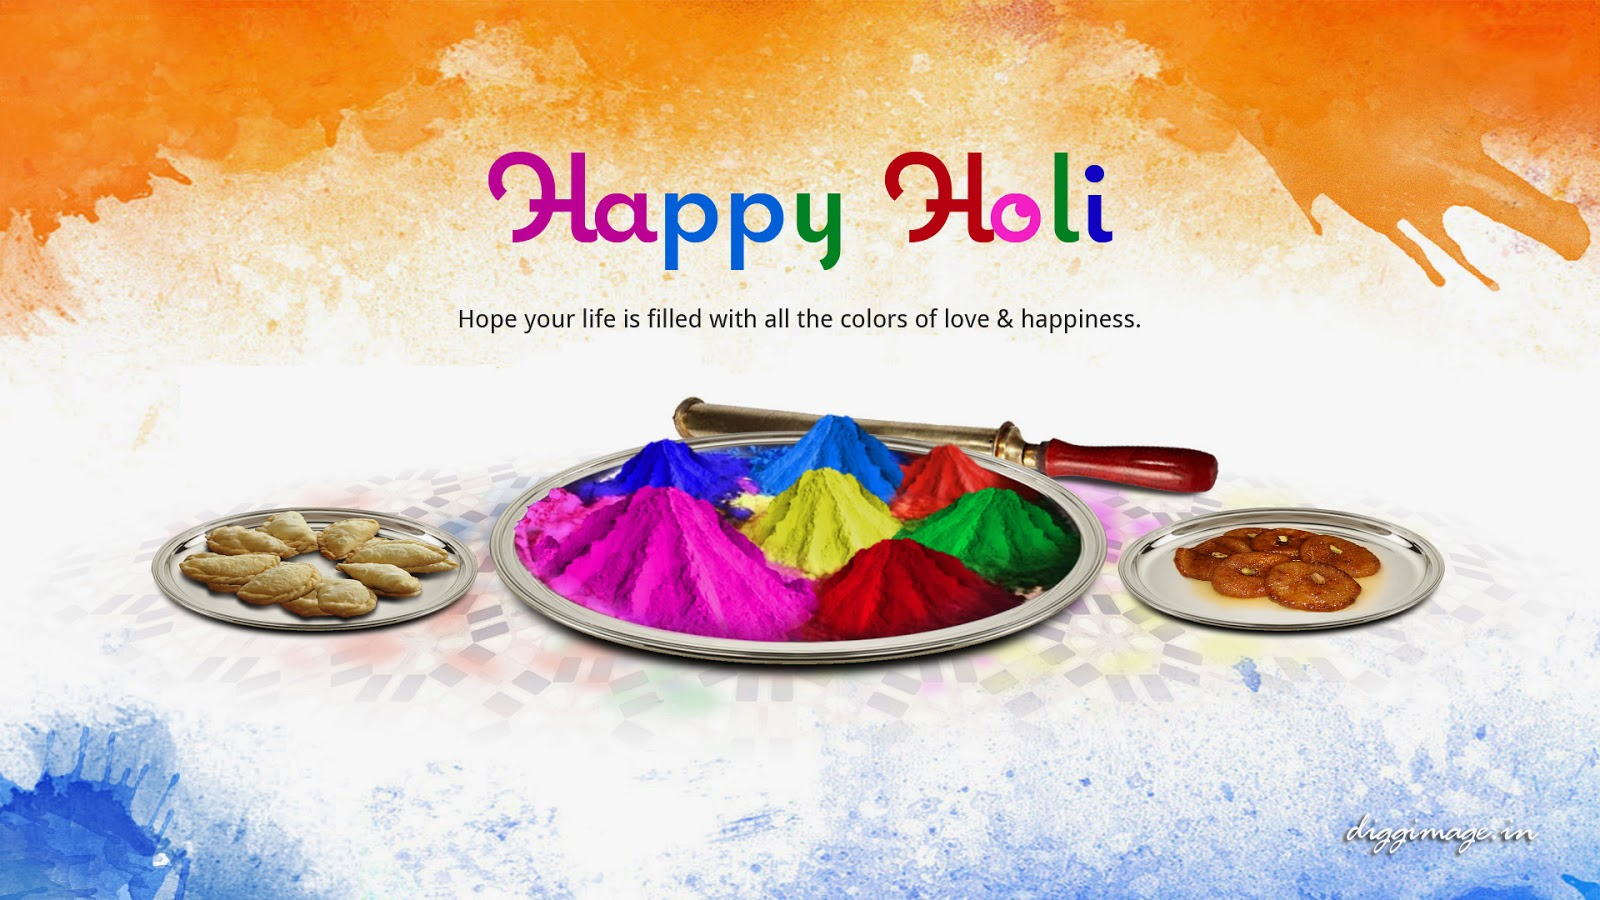 Happy Holi 2016, Holi Wishes, Happy Holi Messages, Holi Quotes, Holi greetings Cards, Images, Holi Songs, Holi HD Wallpapers, Pictures, Holi sms.,Happy Holi 2014 Greetings & Holi 2014 Celebrations quotes : Holi 2014 Greetings, Messages & Quotes : Holi